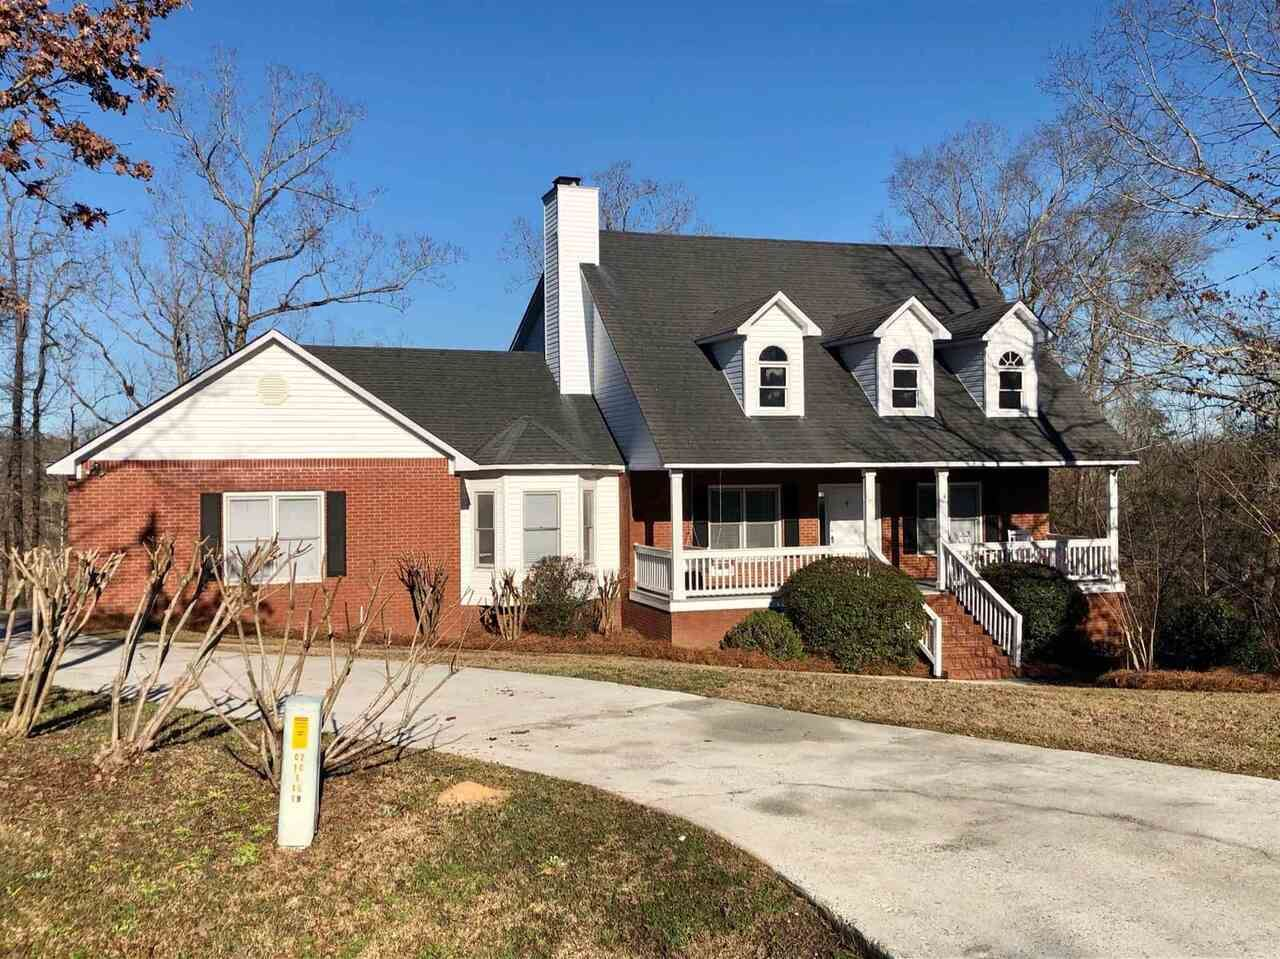 332 Hillridge Cv, Macon, GA 31052 - MLS#: 8945084